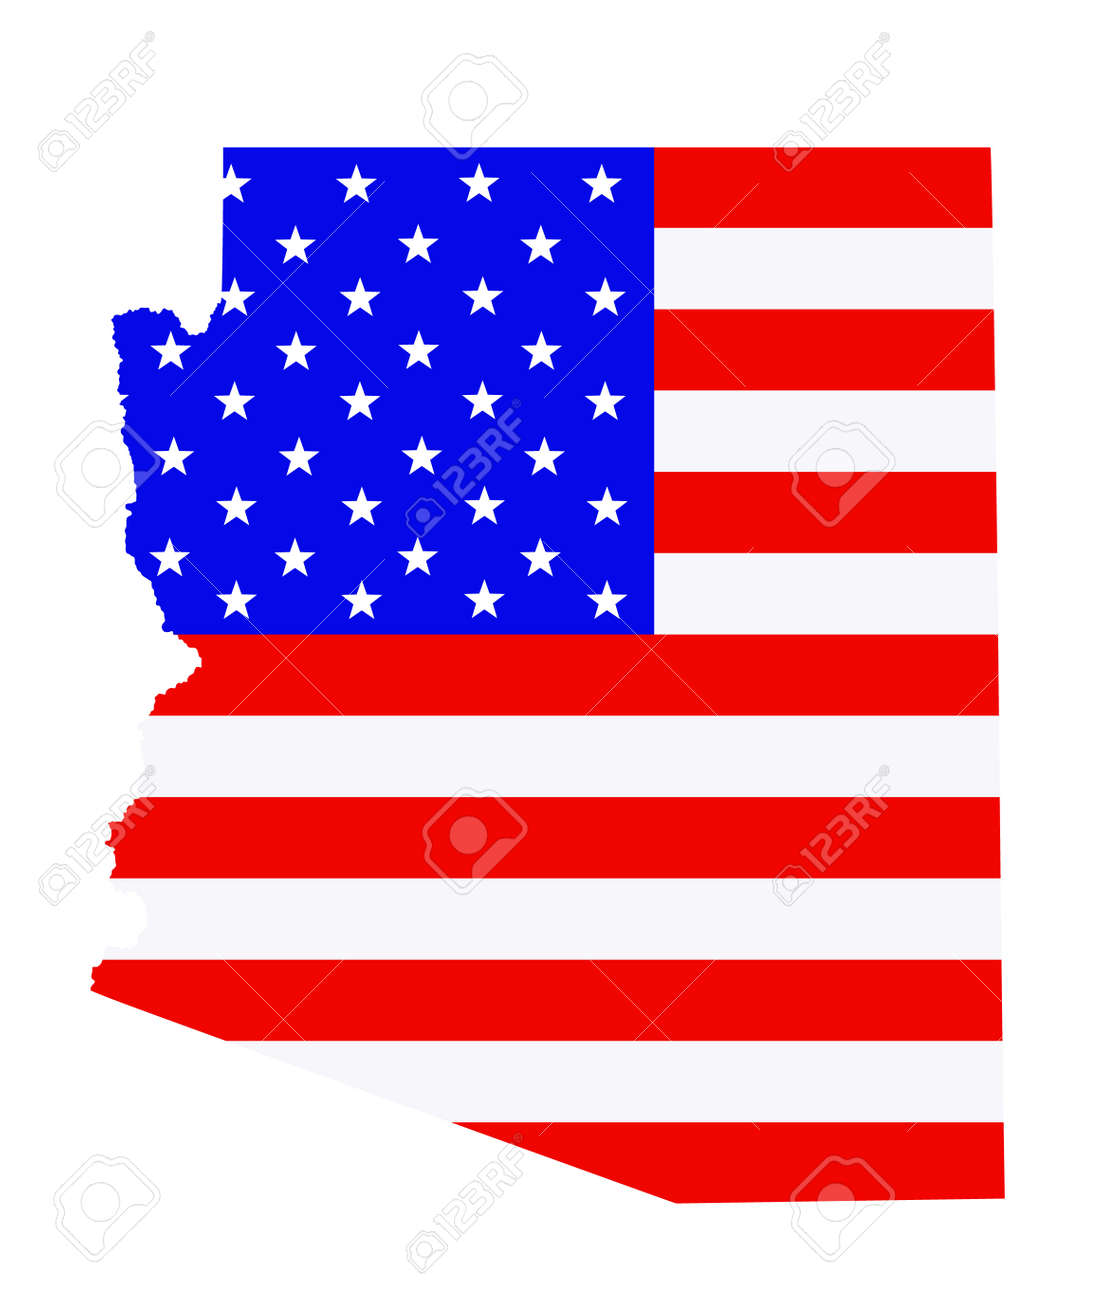 Arizona state map vector silhouette illustration. United States of America flag over Arizona map. USA, American national symbol of pride and patriotism. Vote election campaign banner. - 172749268